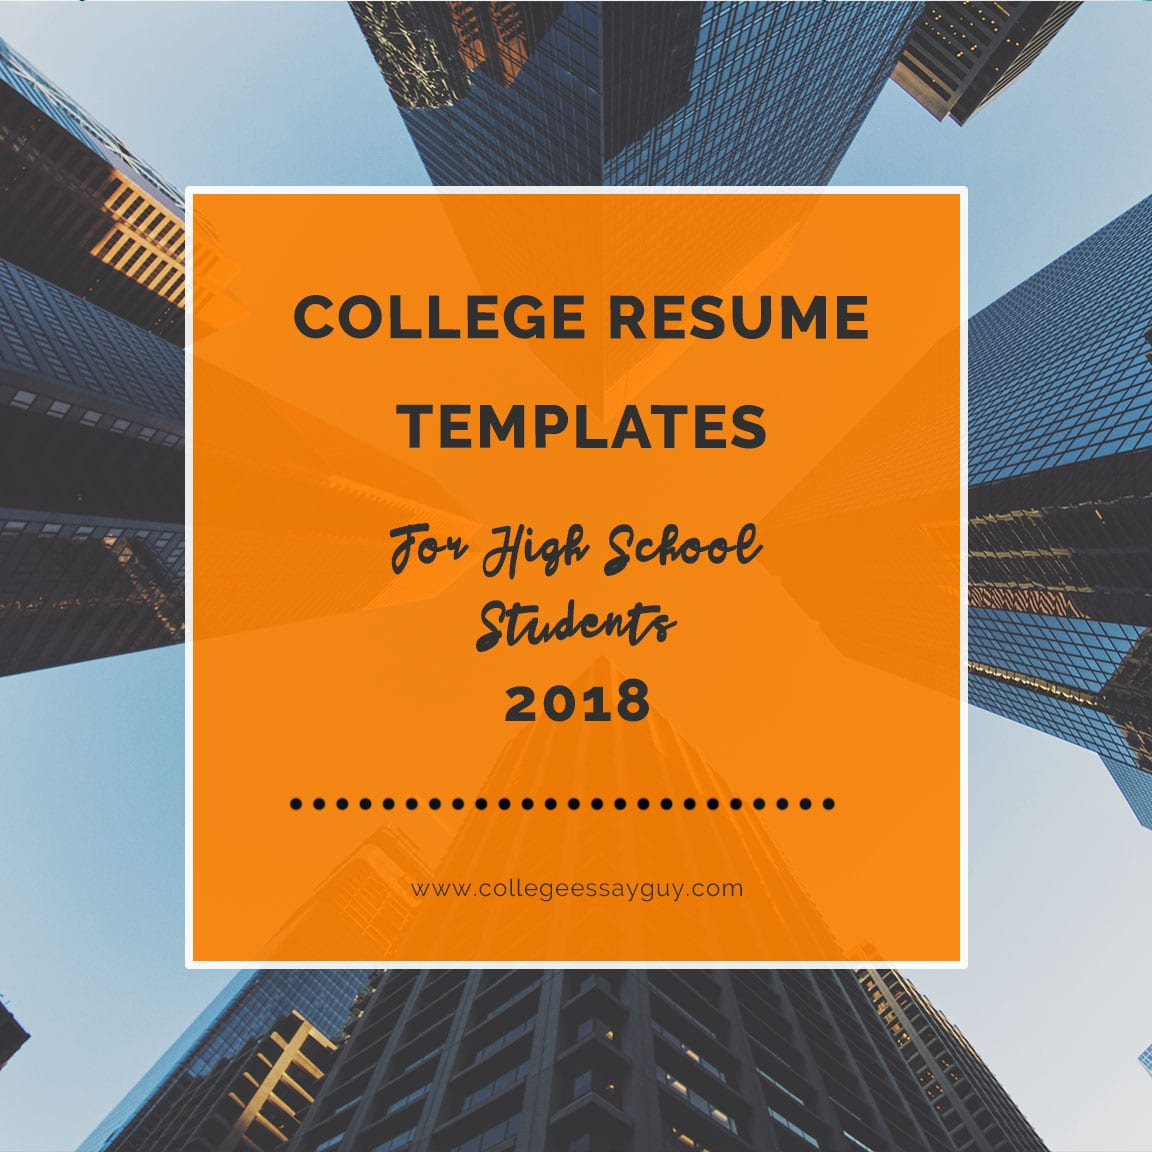 How do you sum up your life's work on a piece of paper? First things first. Remember that you are not your college resume. You are a human being, not a human doing. If you don't have a rockstar resume, that's okay. Work with what you've got. goo.gl/1AUFwL